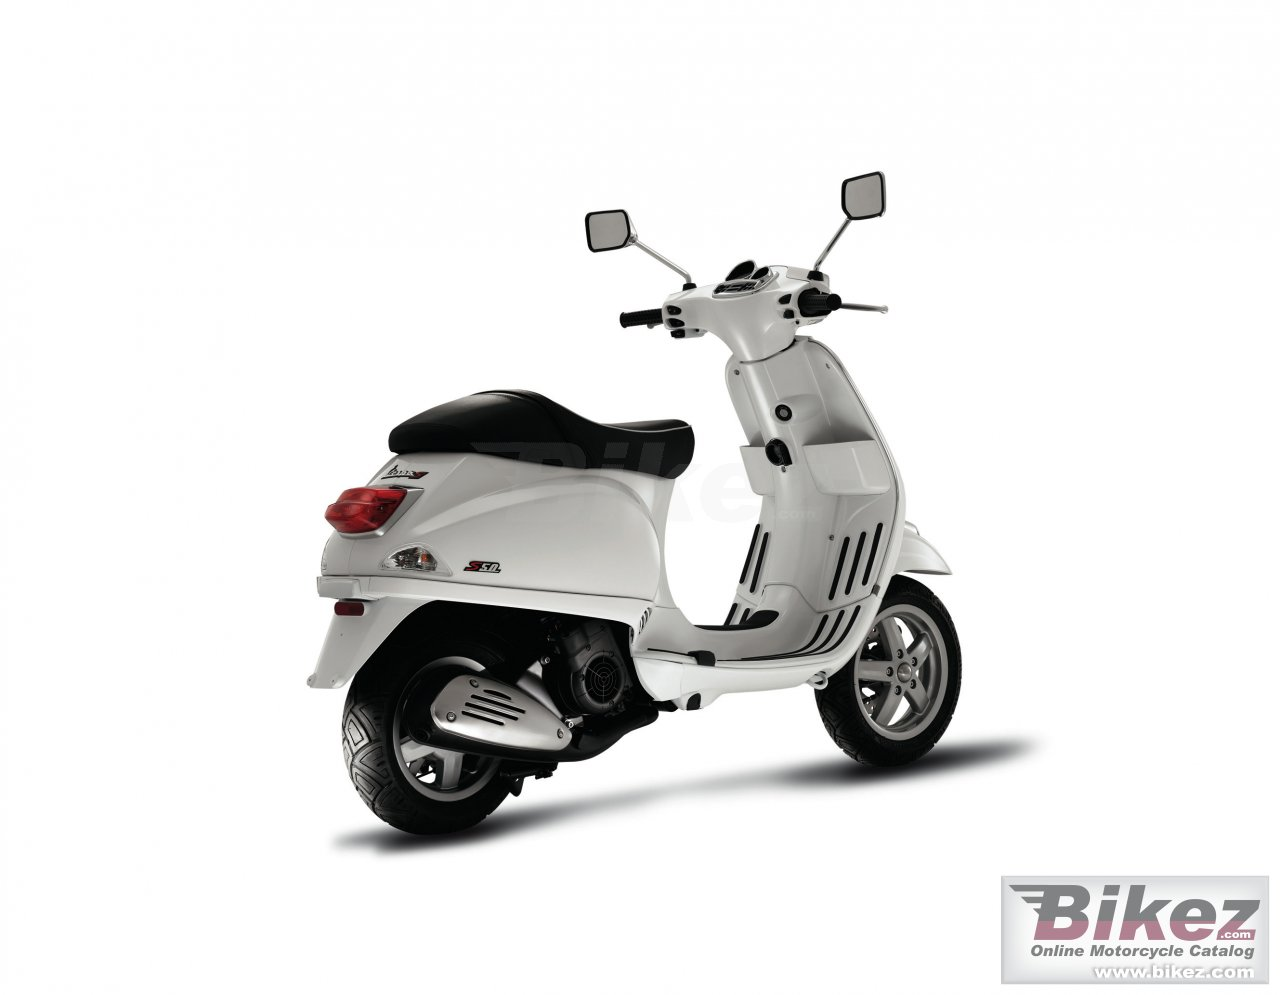 Big Vespa s 50 picture and wallpaper from Bikez.com